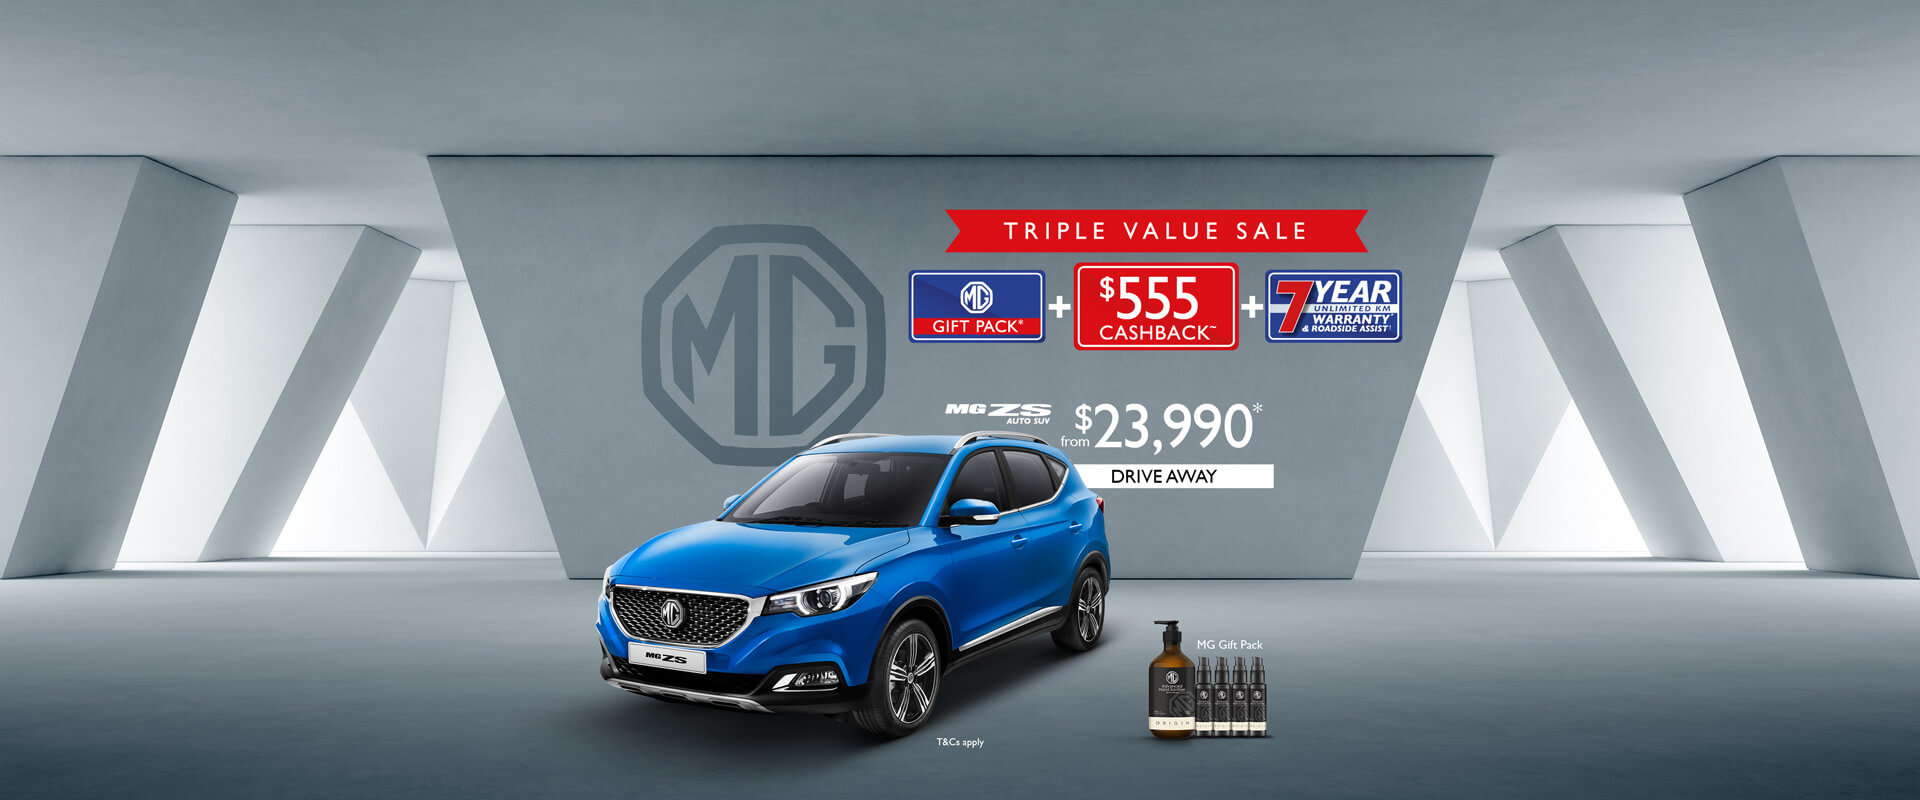 MG ZS Trioffers/ple Value Sale